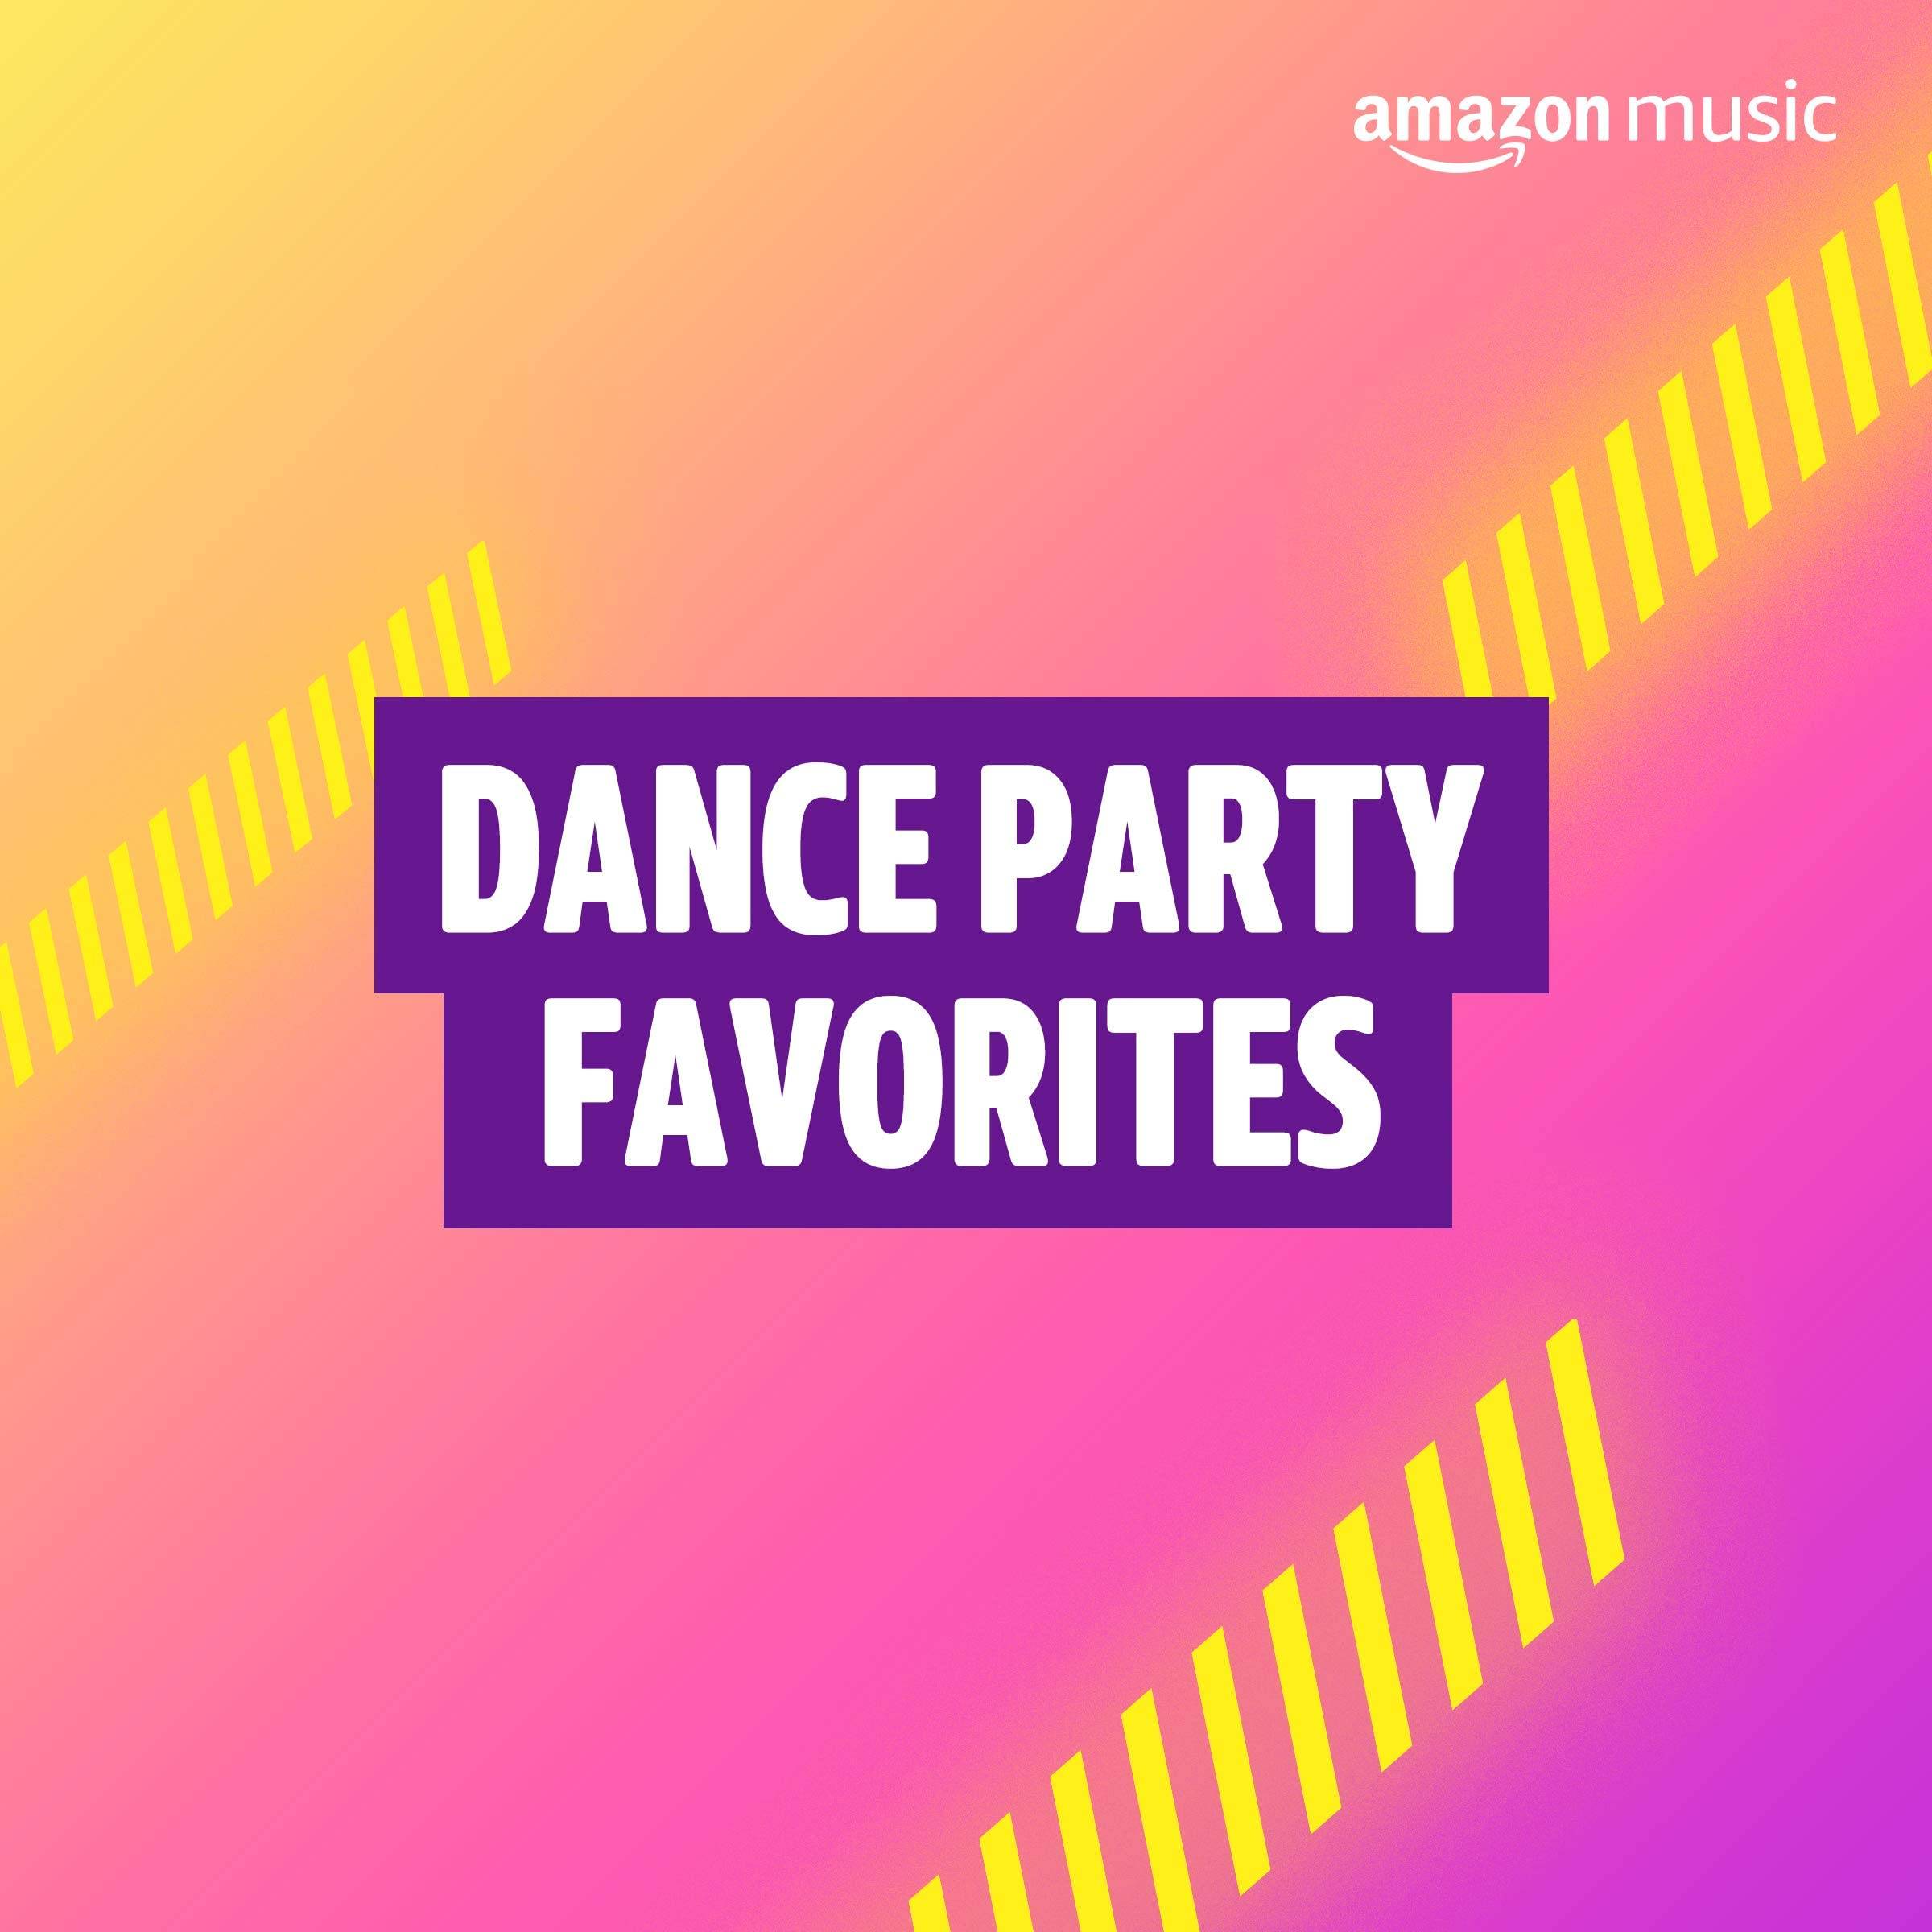 Dance Party Favorites